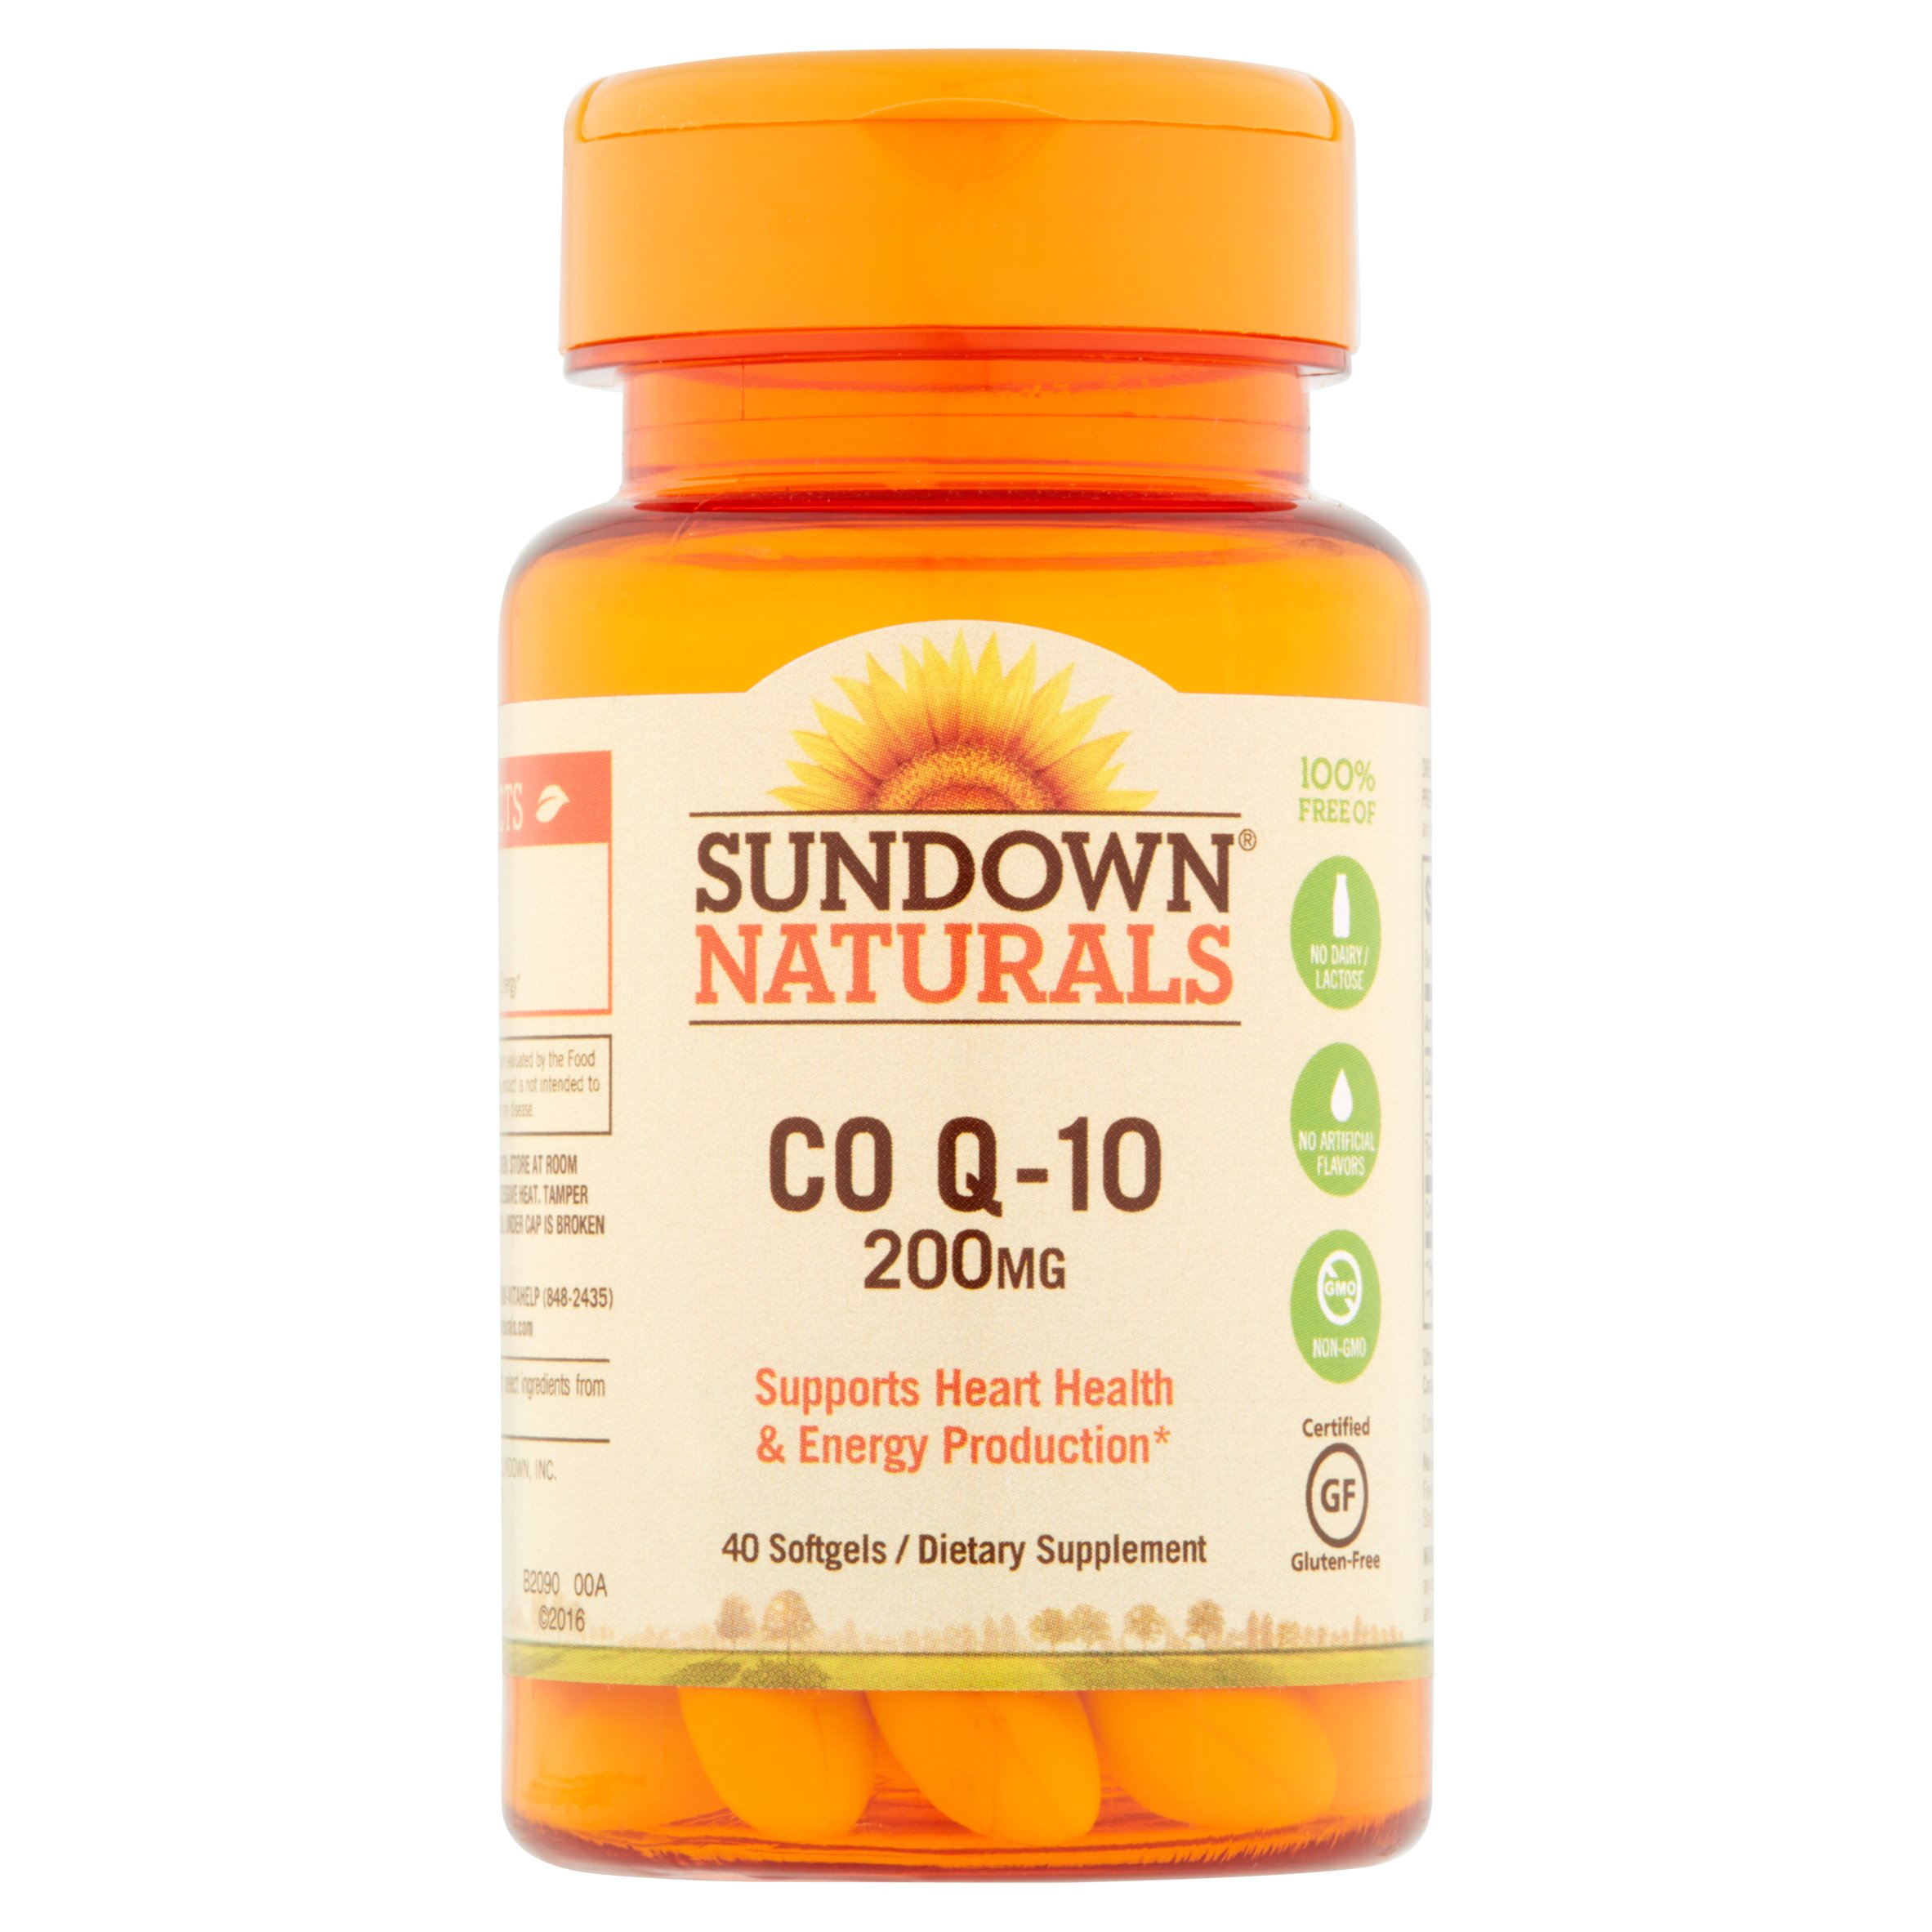 Sundown Naturals CO Q-10 Softgels, 200 mg, 40 count